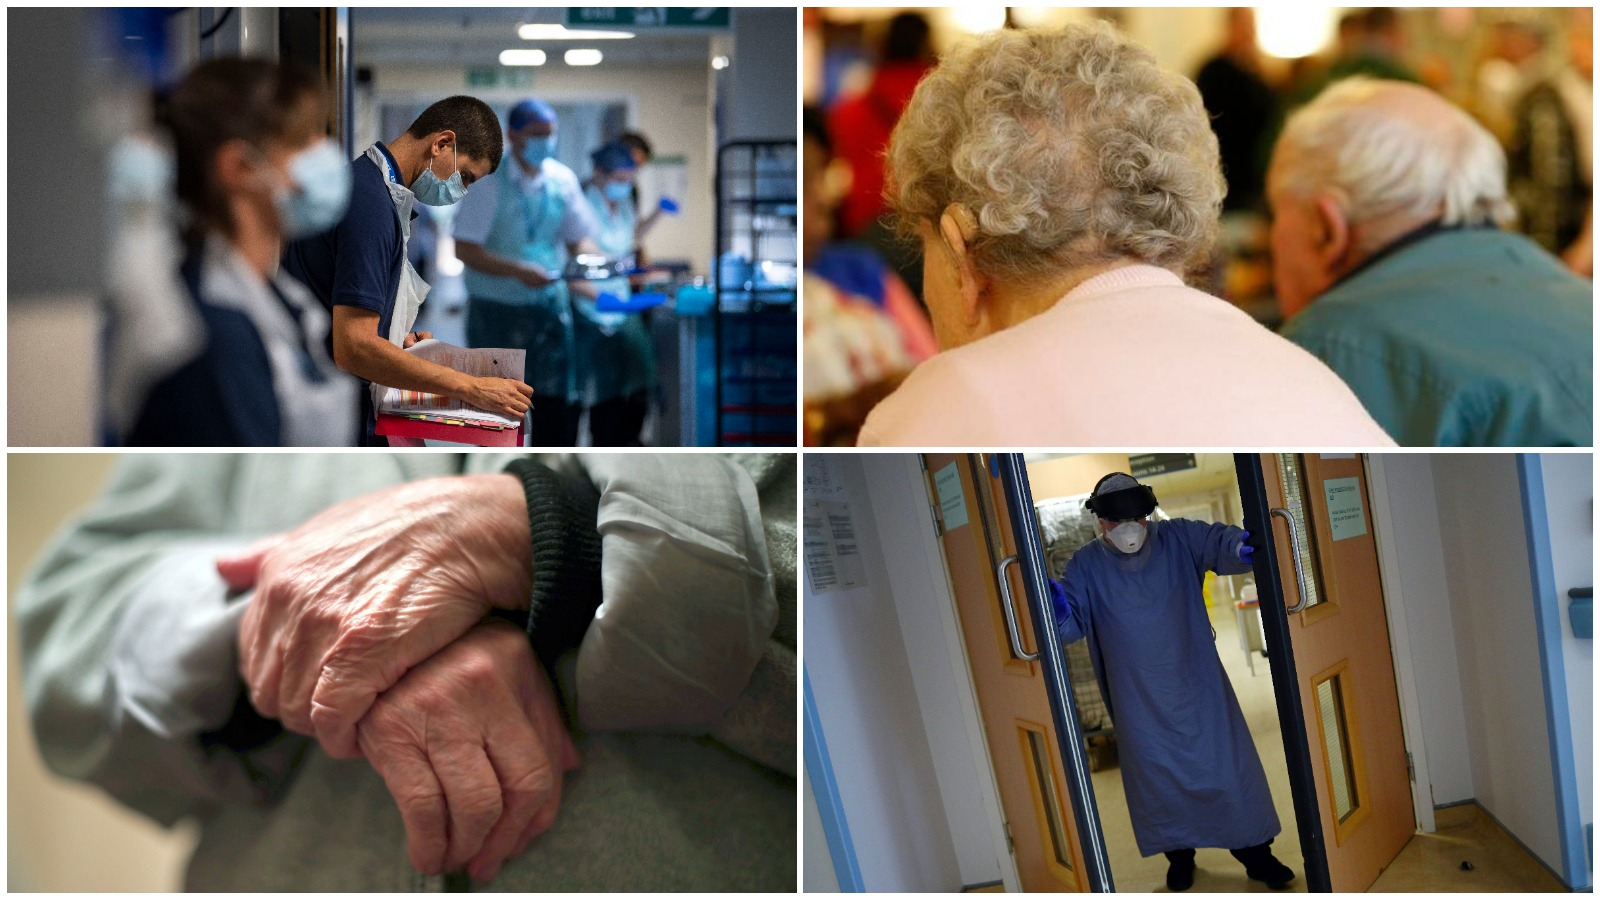 Tens of thousands discharged into care homes before routine coronavirus testing in England